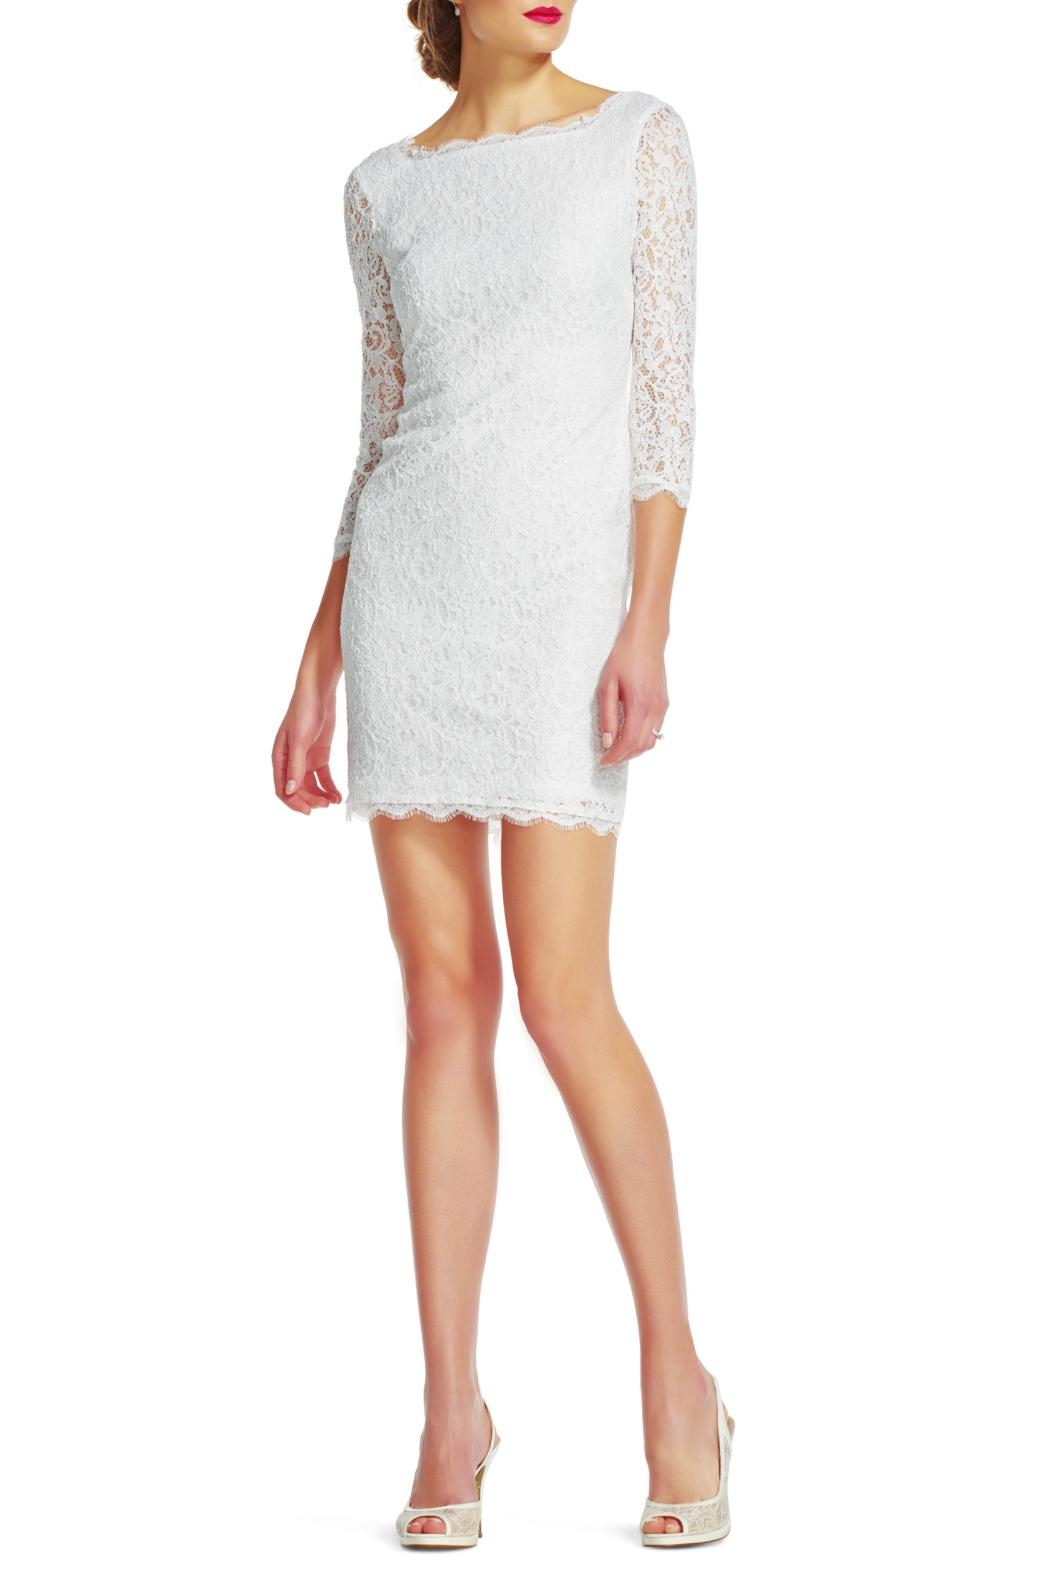 Adrianna Papell Lace Dress - Main Image